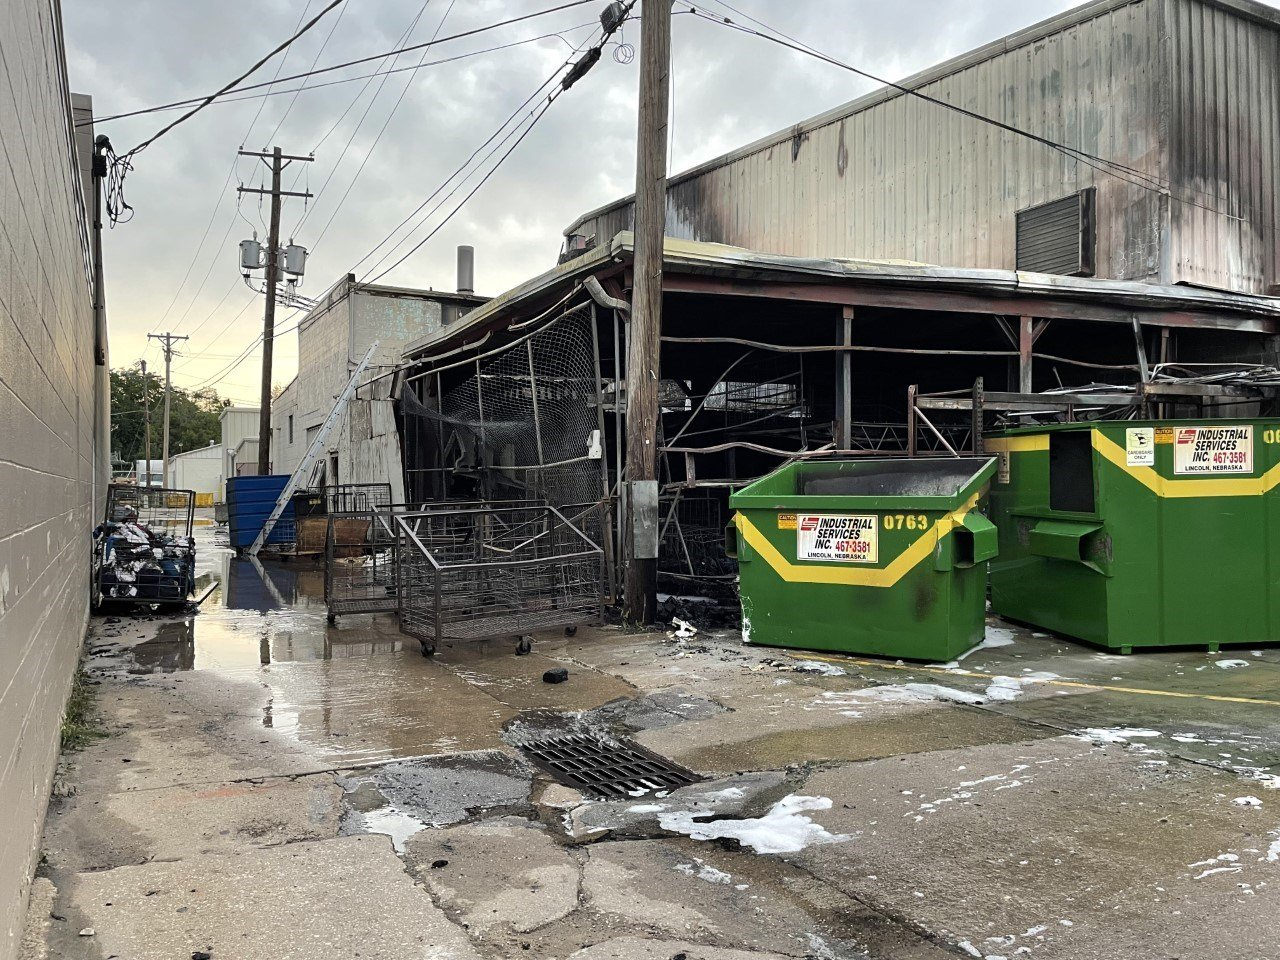 2-alarm fire at Lincoln business occupies firefighters for several hours